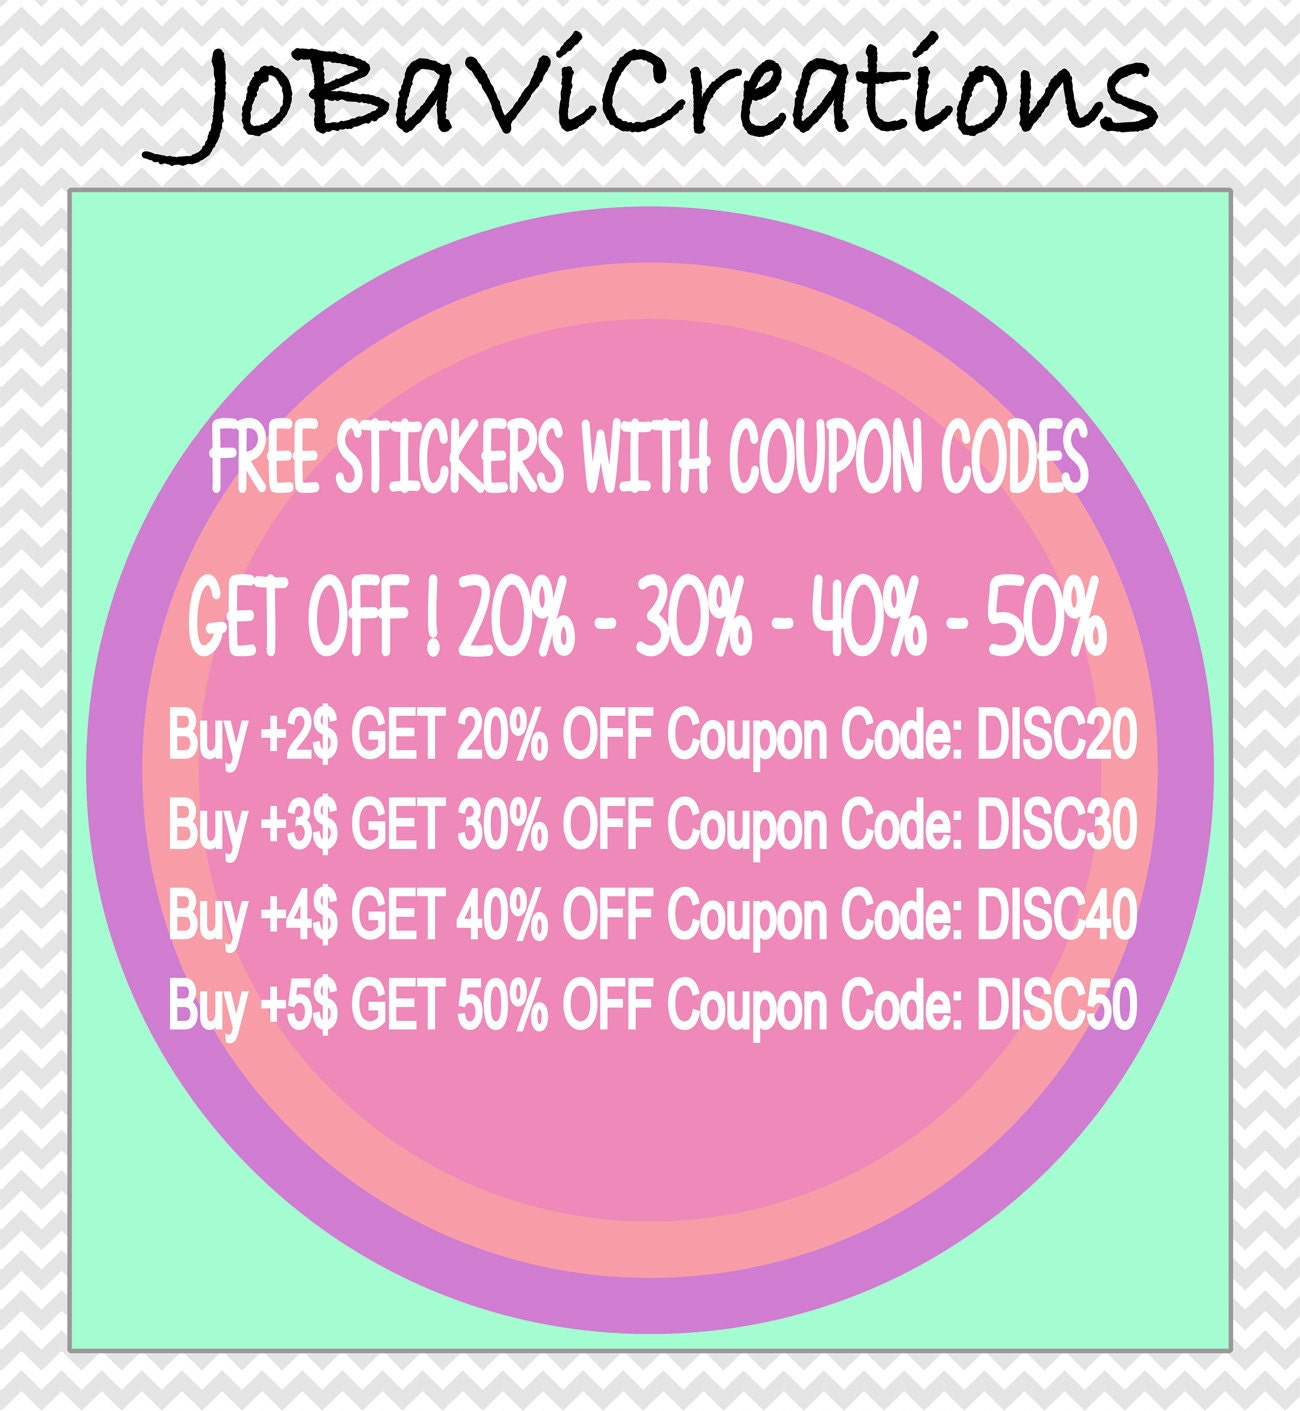 printable coupons planner stickers printable stickers coupons codes discount codes discount coupons coupons stickers printable